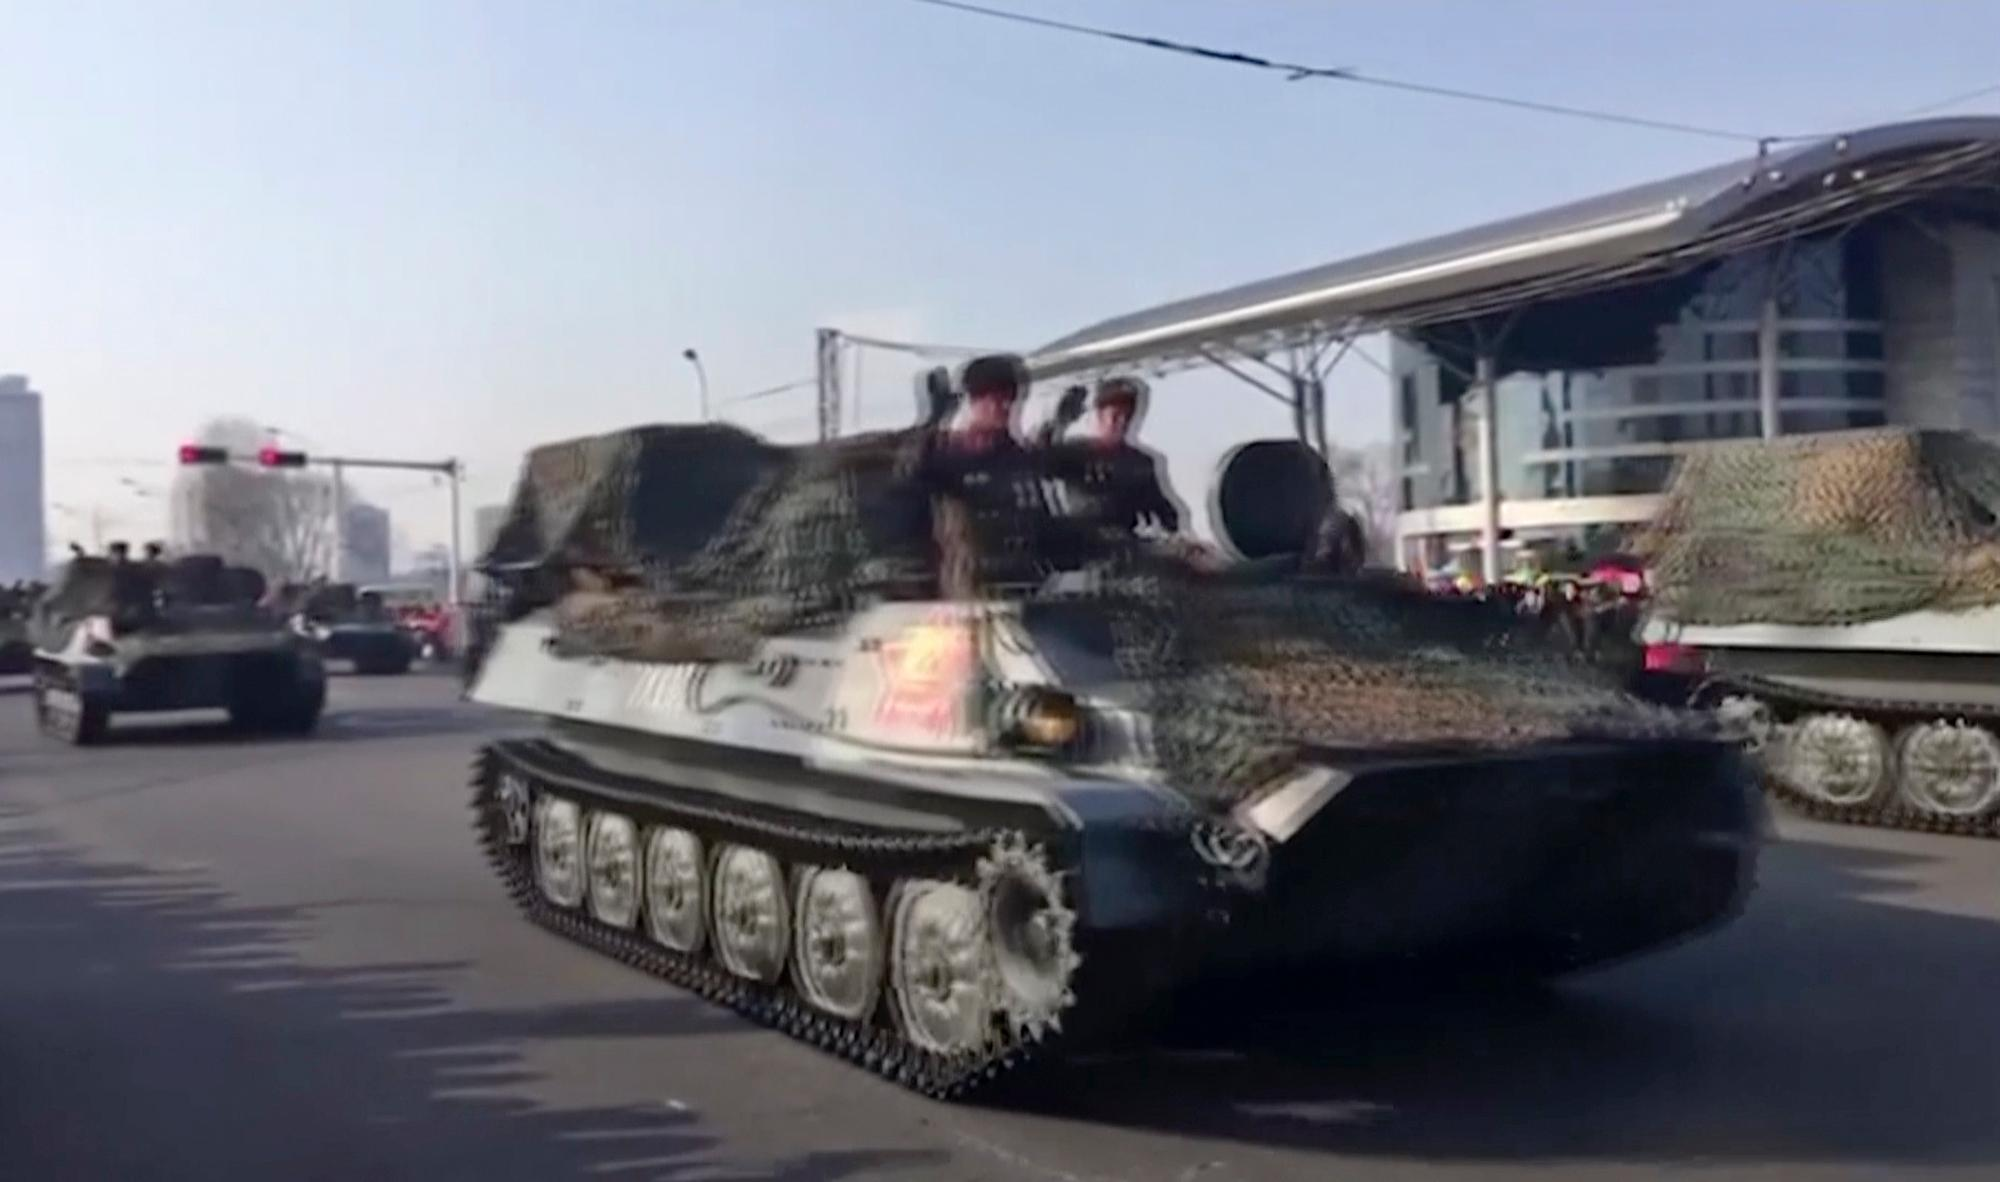 This image taken from video footage provided by Paektu Cultural Exchange shows military vehicles through streets in Pyongyang, North Korea, Thursday, Feb. 8, 2018. North Korea held a military parade and rally on Kim Il Sung Square on Thursday, just one day before South Korea holds the opening ceremony for the Pyeongchang Winter Olympics. (AP Photo)